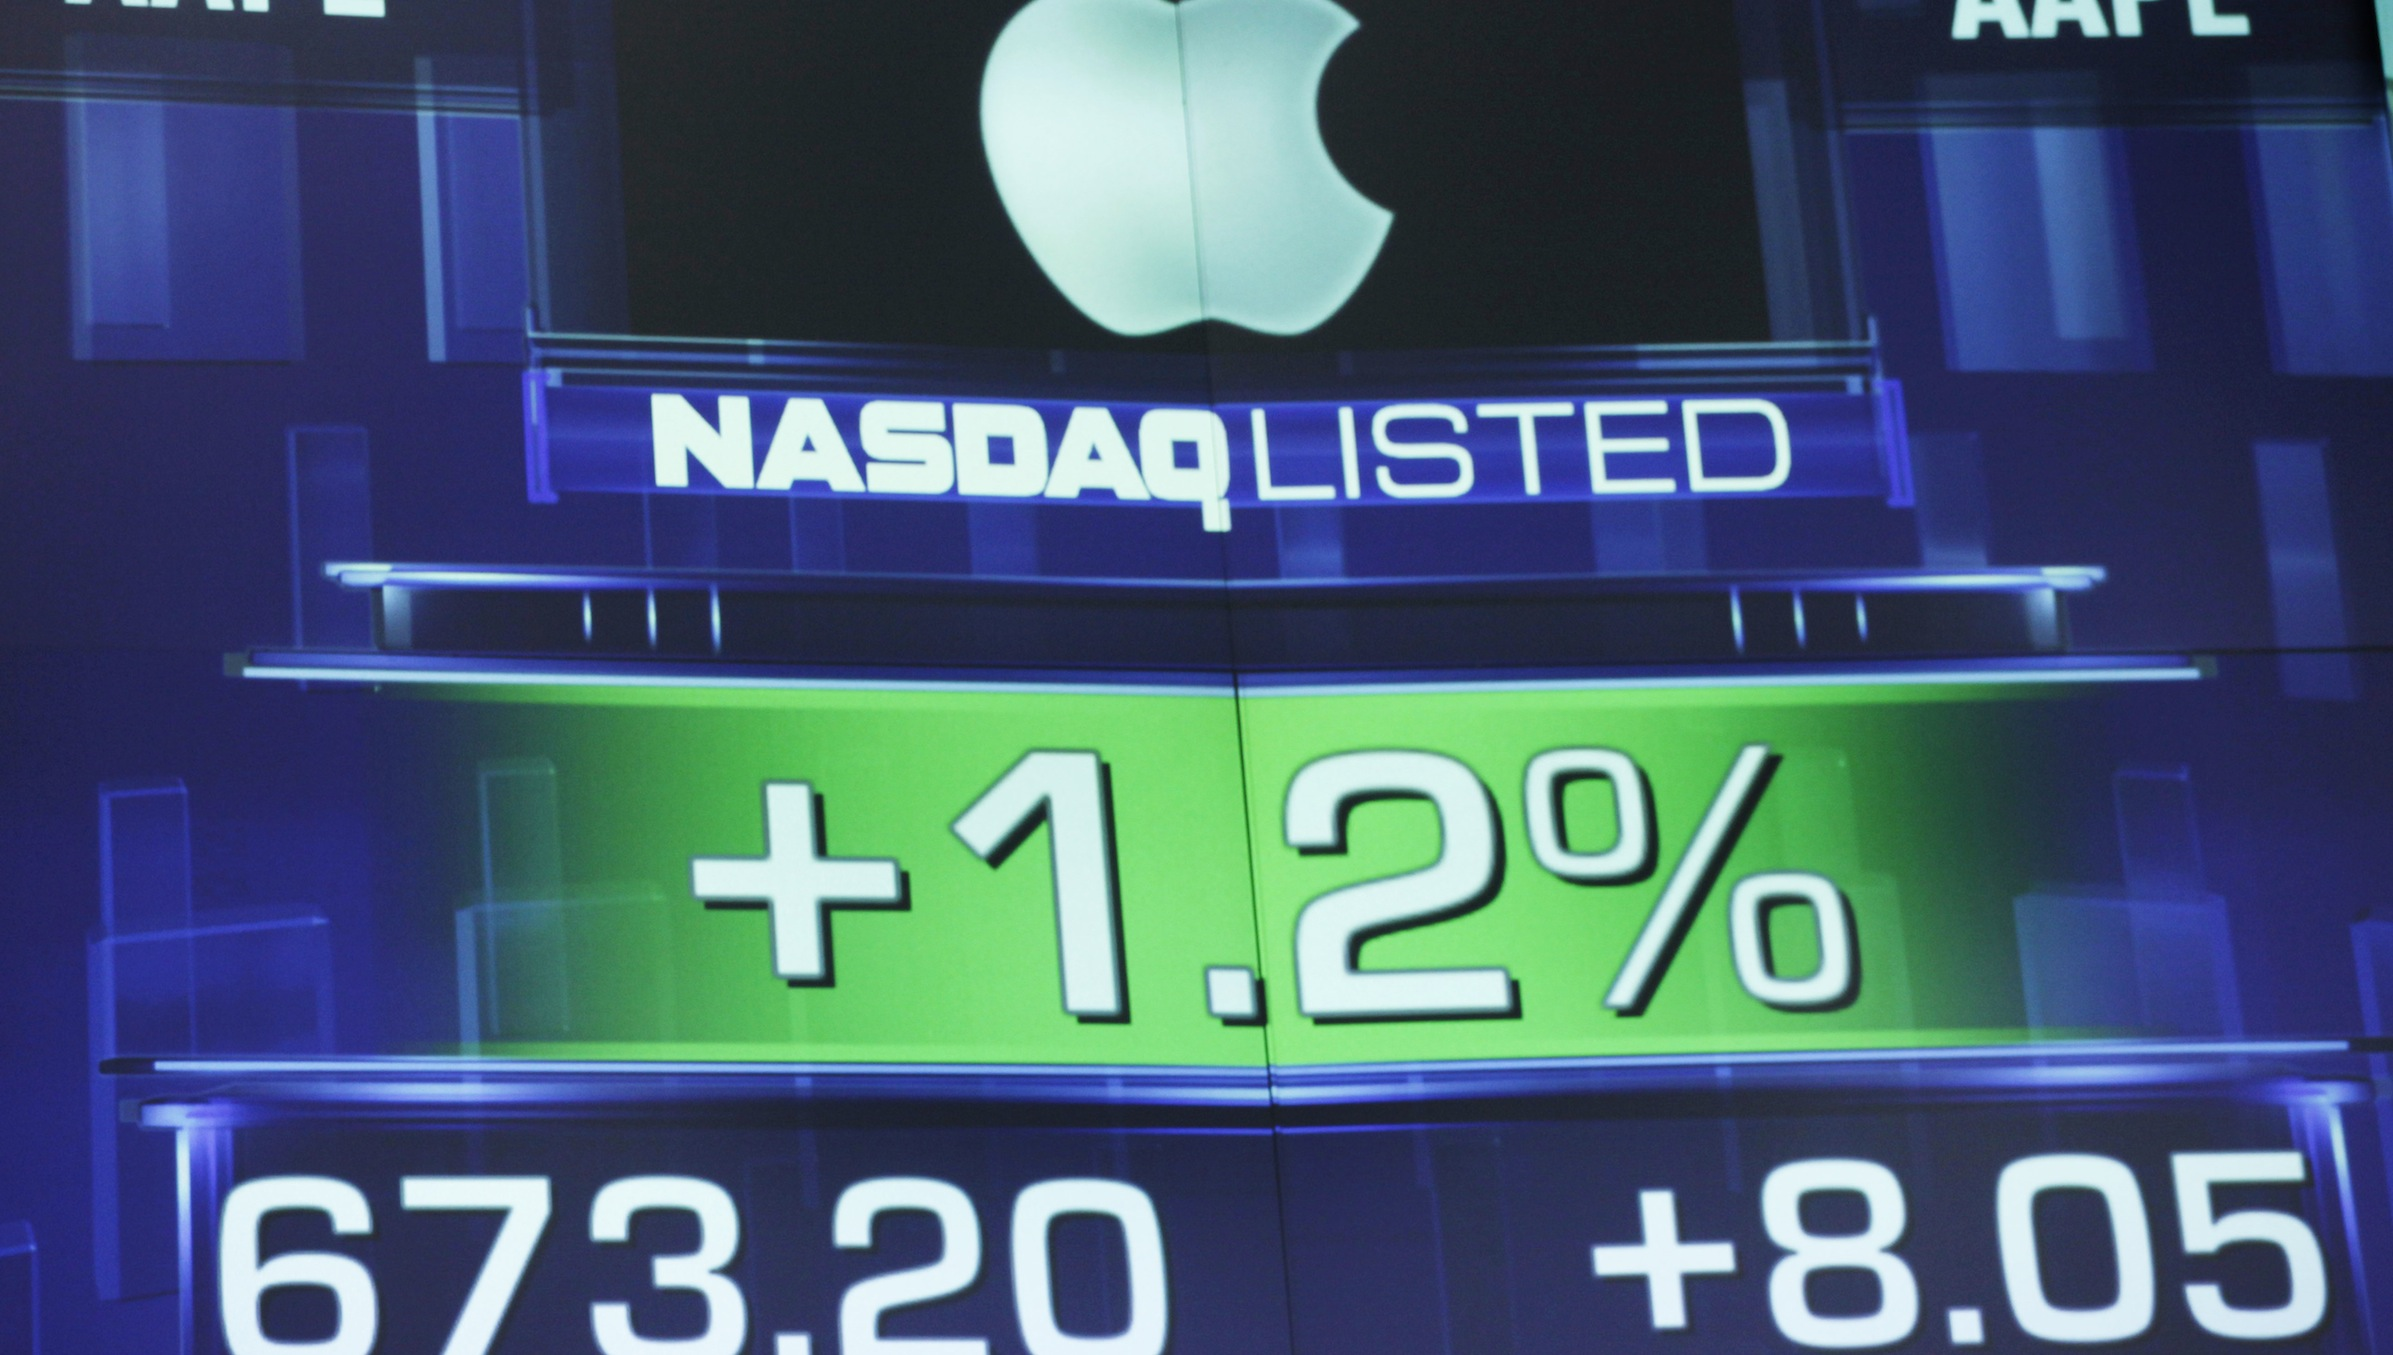 The Apple share price is shown on a stock ticker at the Nasdaq MarketSite, Tuesday, Aug. 21, 2012 in New York. Major stock indexes inched above four-year closing highs in early trading Tuesday. On Monday, Apple's surging stock propelled the company's value to $624 billion, the world's highest, ever. (AP Photo/Mark Lennihan)